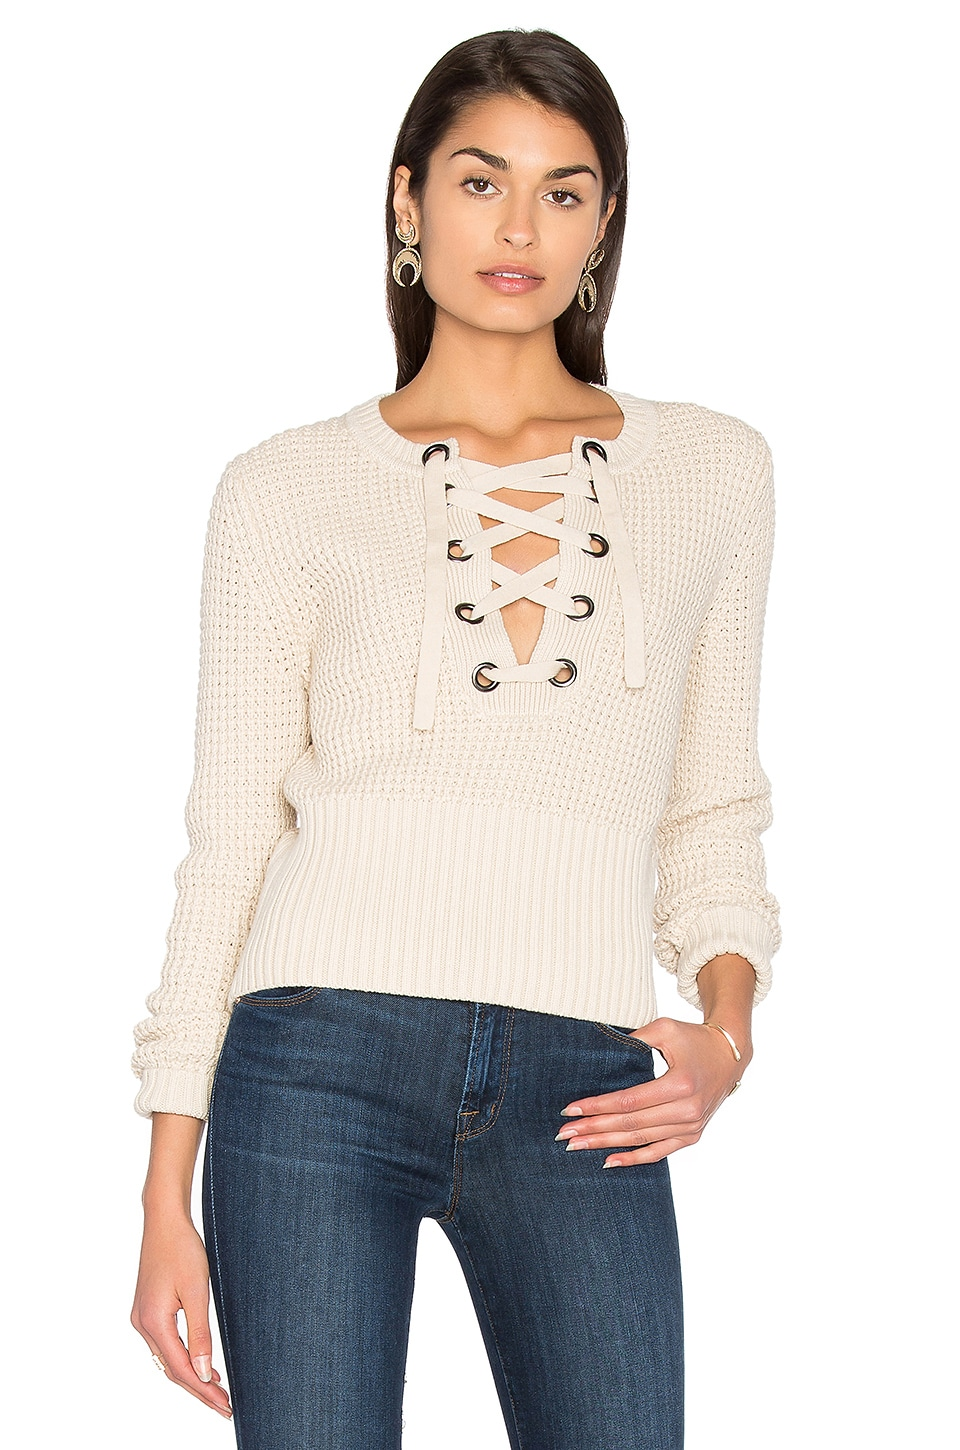 Lace Up Sweater by 525 america